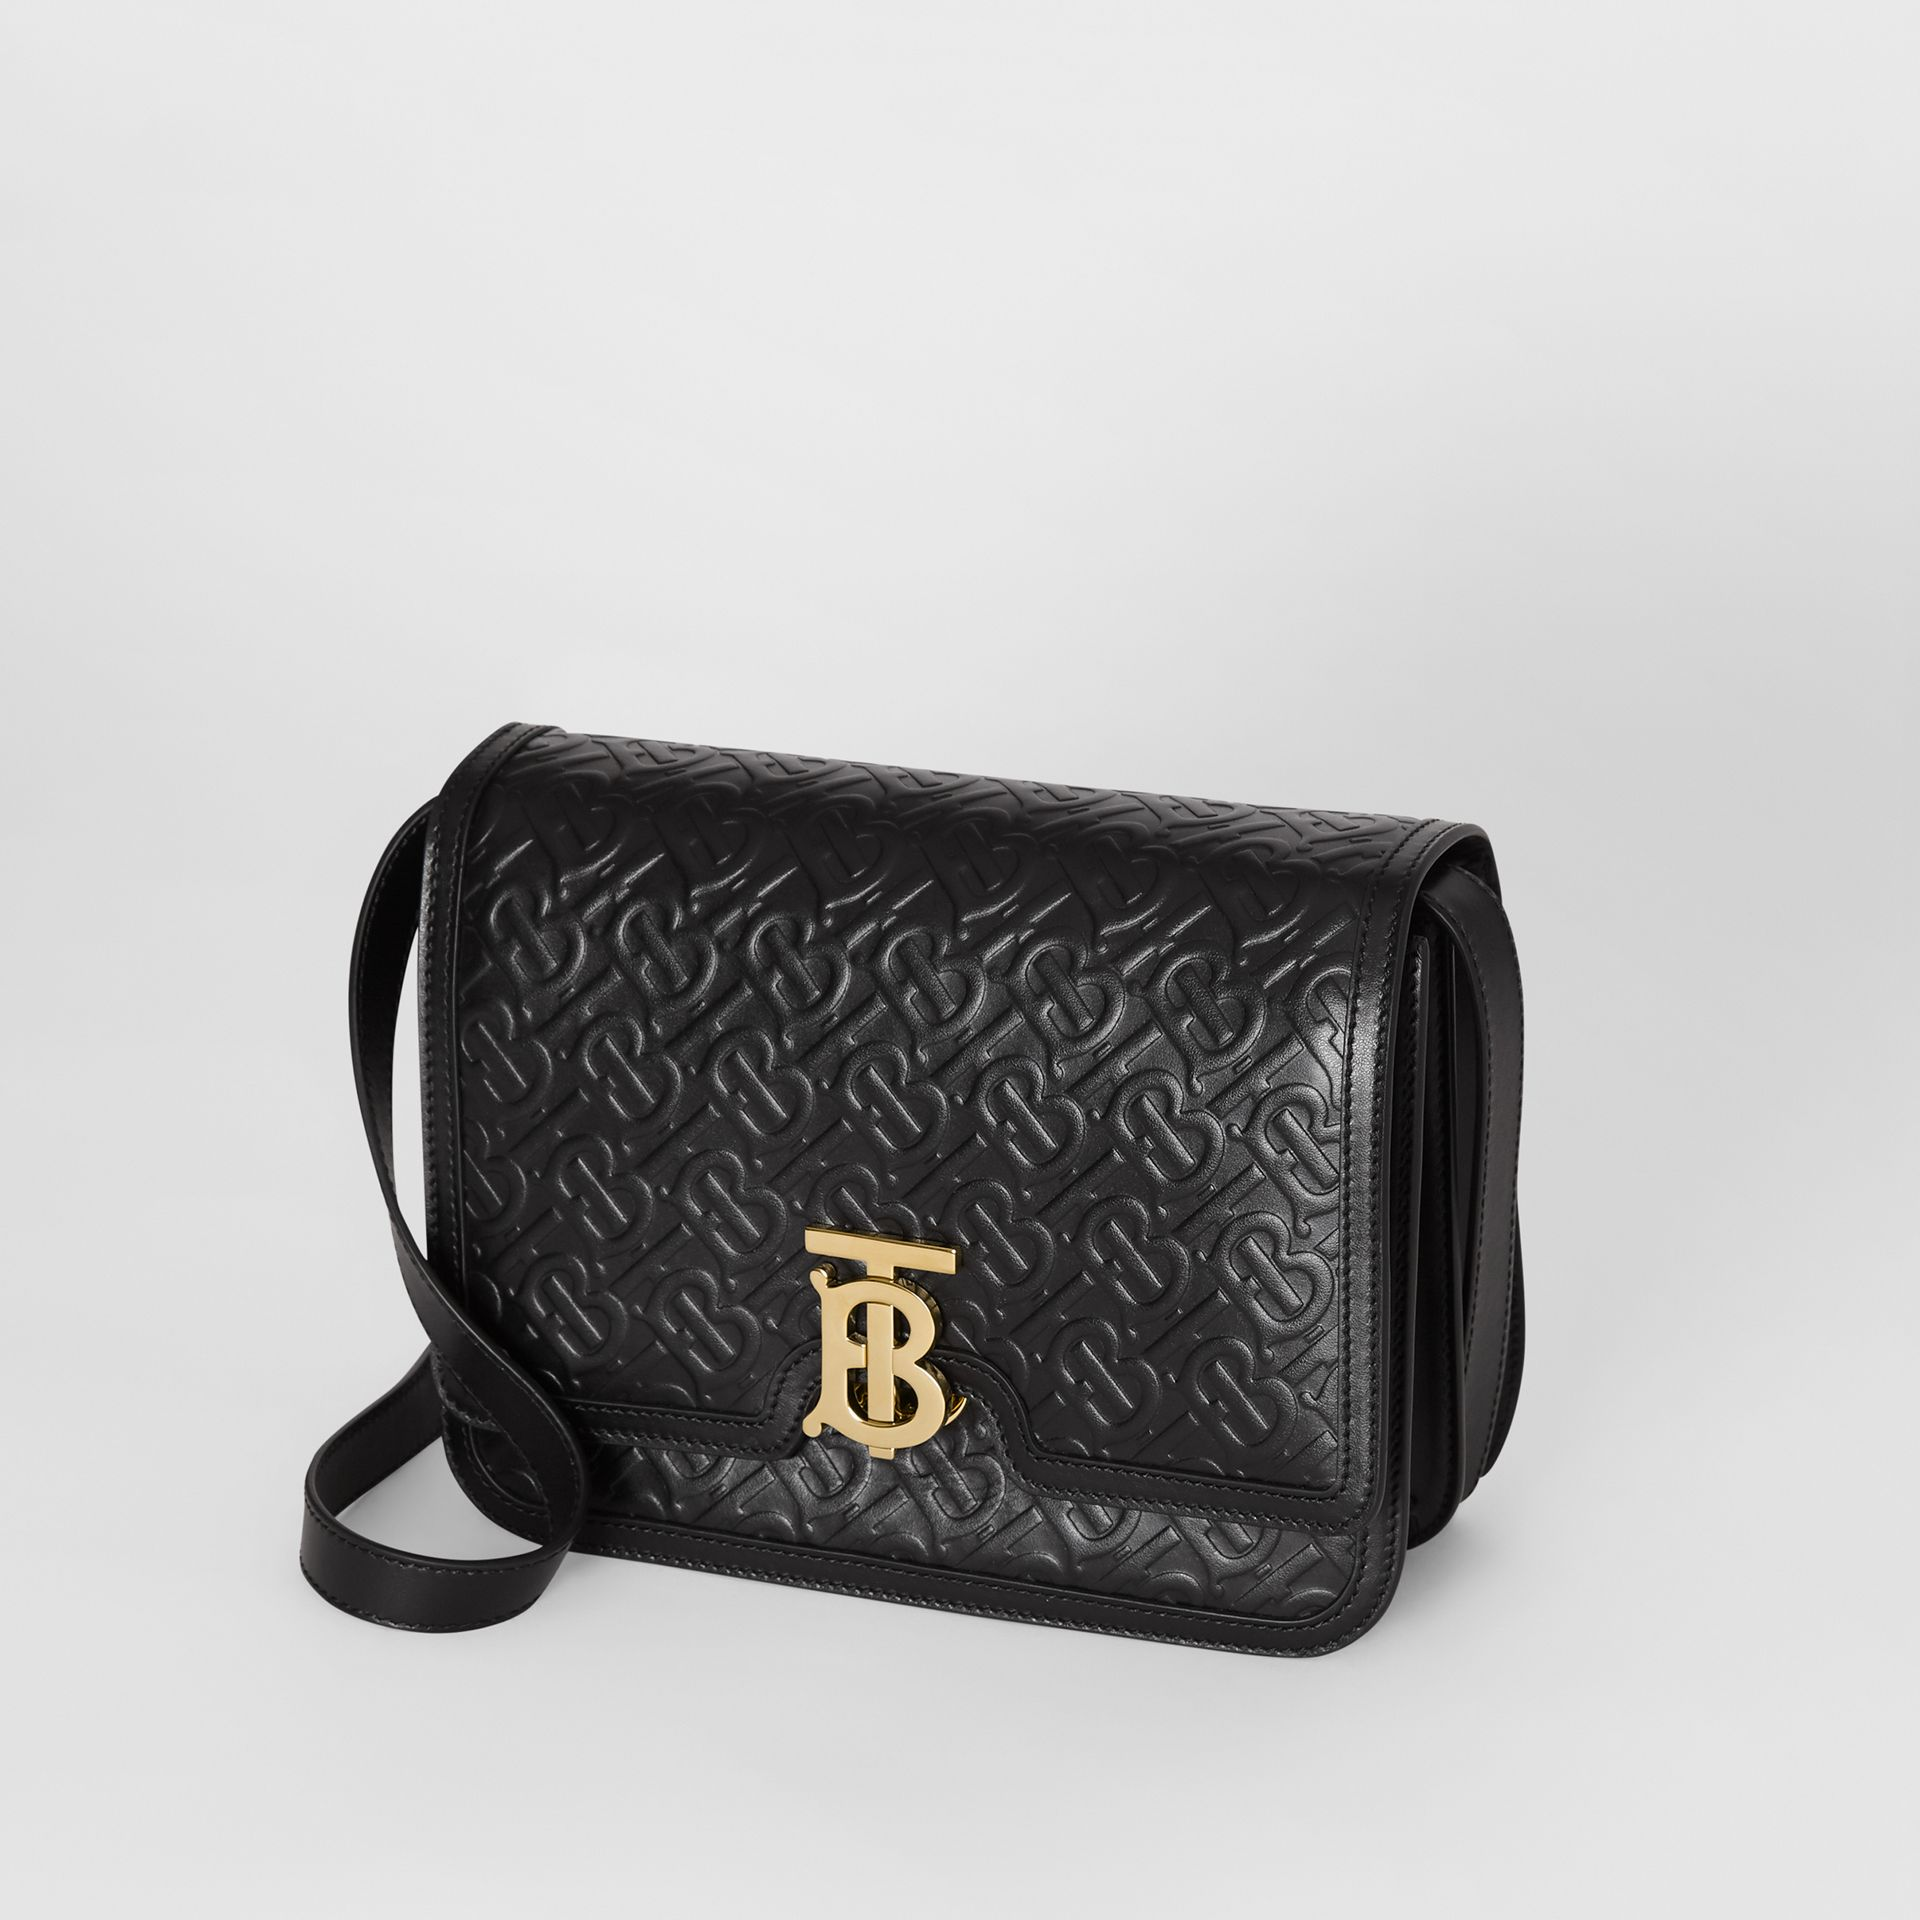 Medium Monogram Leather TB Bag in Black - Women | Burberry - gallery image 3